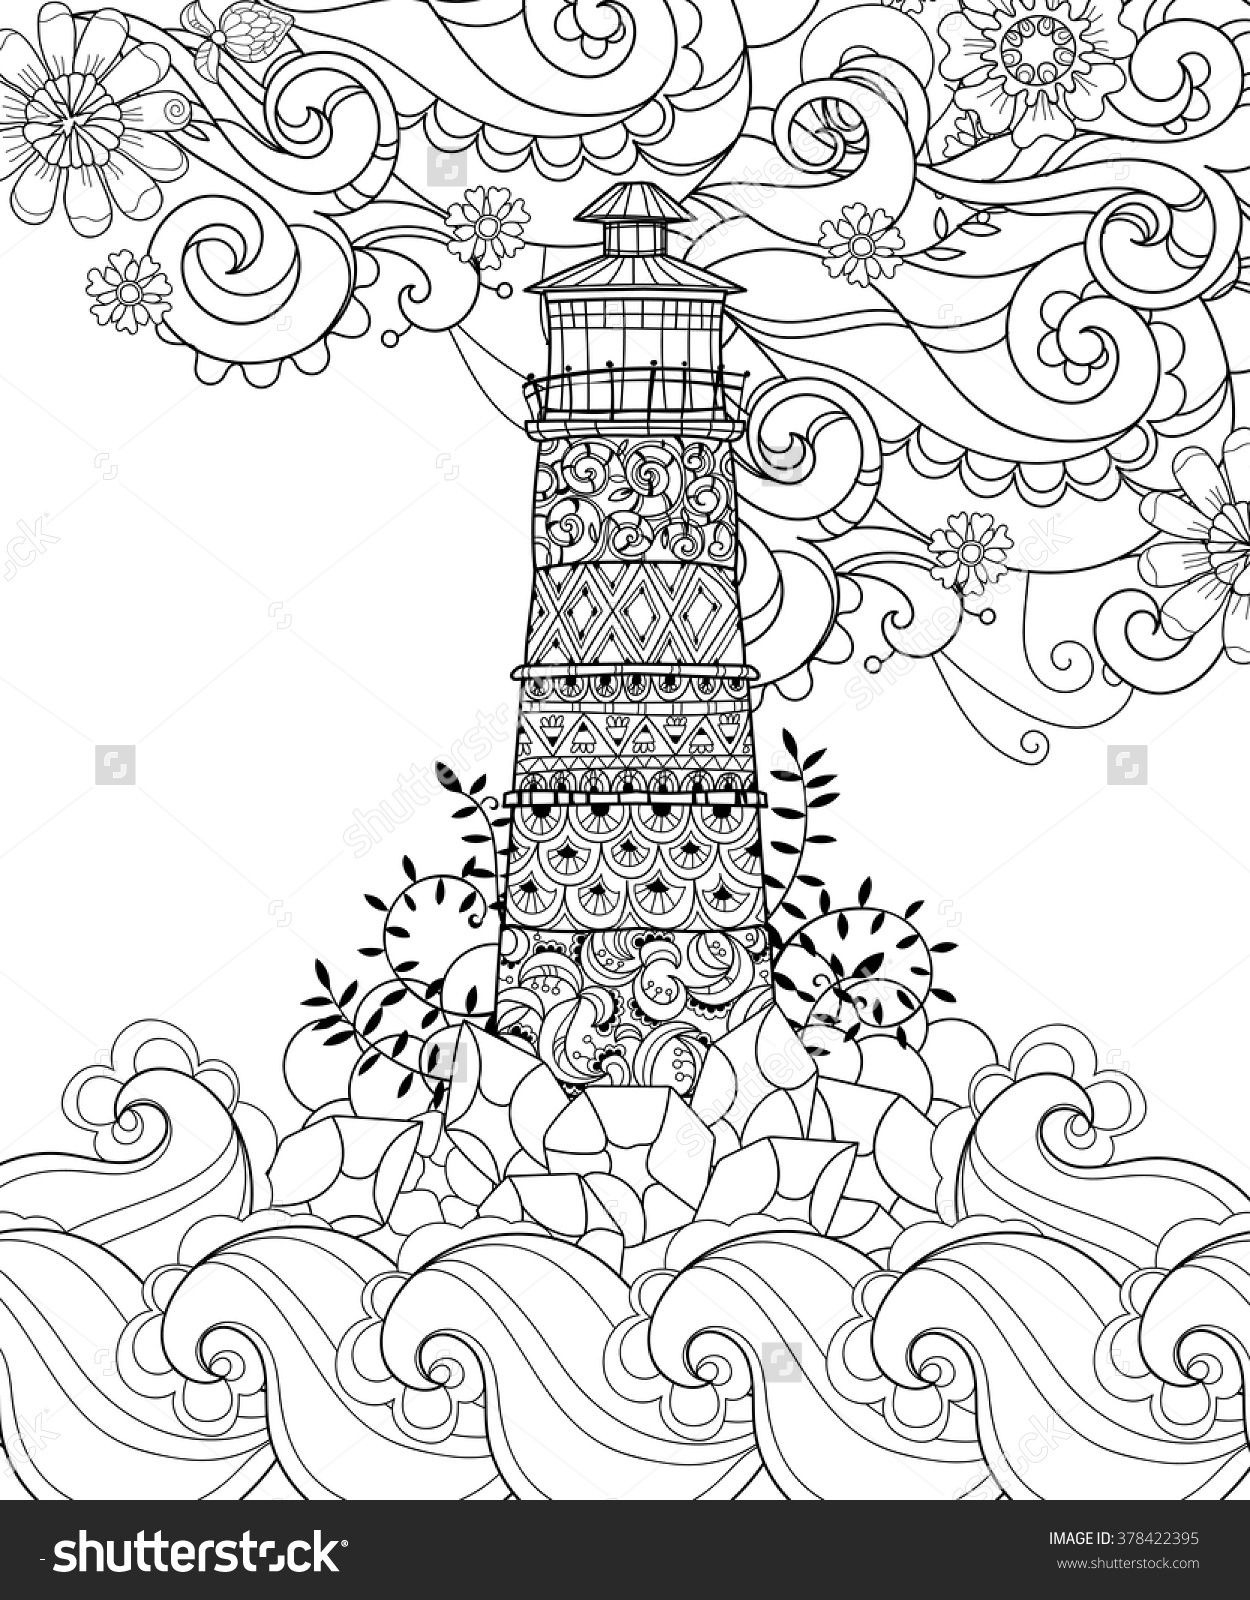 printable lighthouse coloring pages Collection-Free Printable Lighthouse Coloring Pages Printable Lighthouse Coloring Pages Luxury Hand Drawn Doodle Outline 18-m